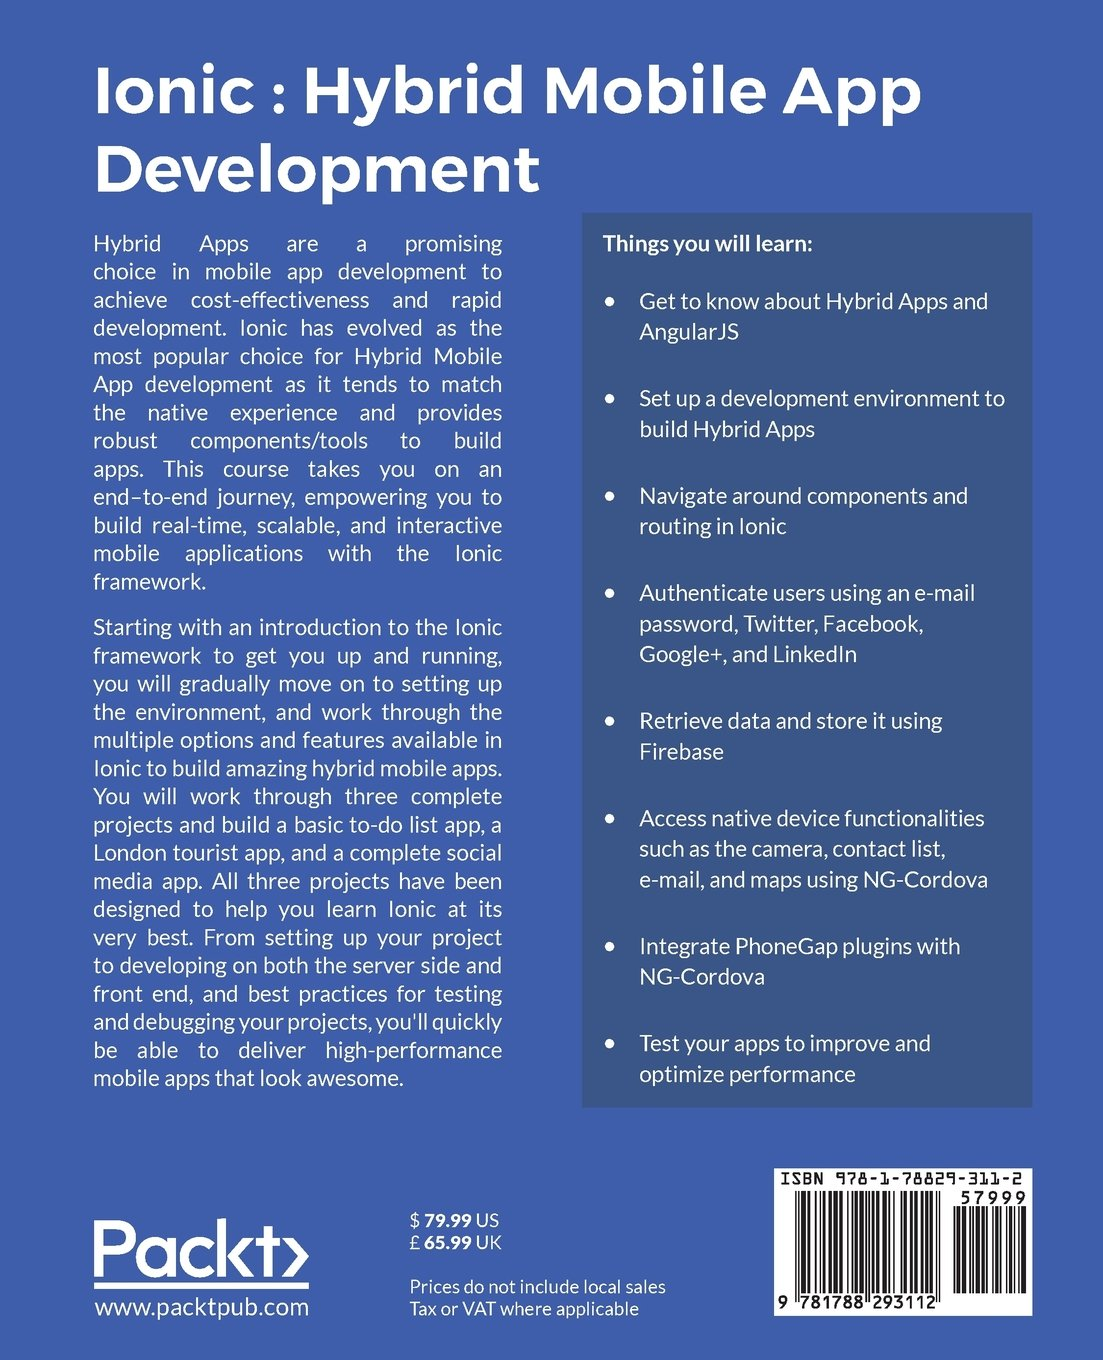 Buy Ionic : Hybrid Mobile App Development Book Online at Low Prices